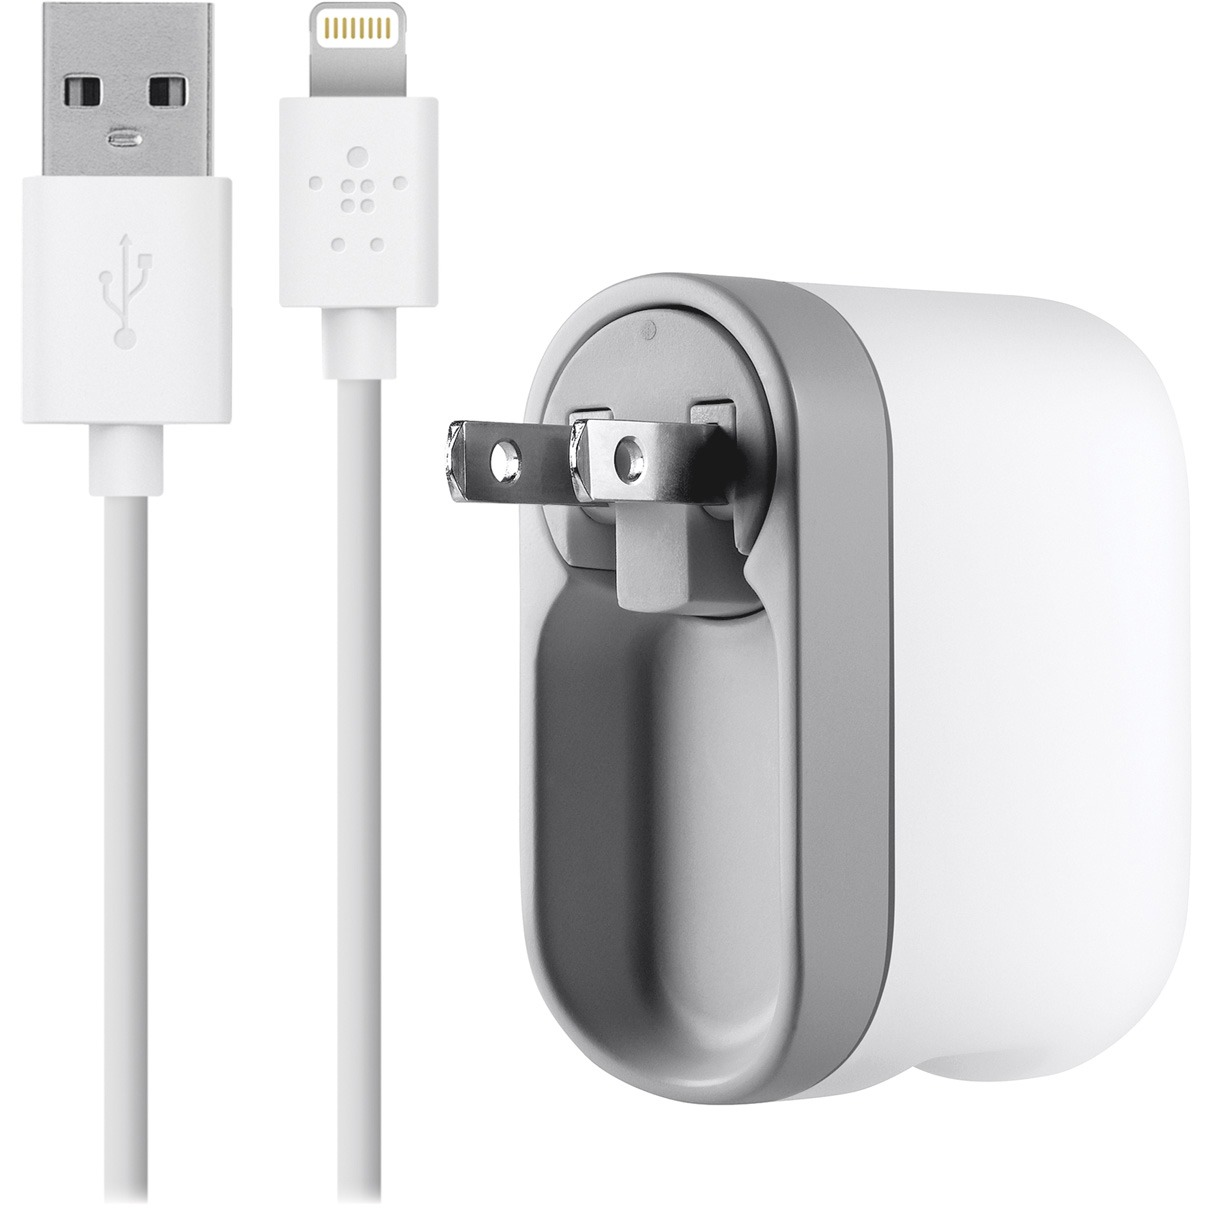 Belkin, BLKF8J03204WHT, AC Swivel Lightning Cable iPhone 5 Charger, 1, White